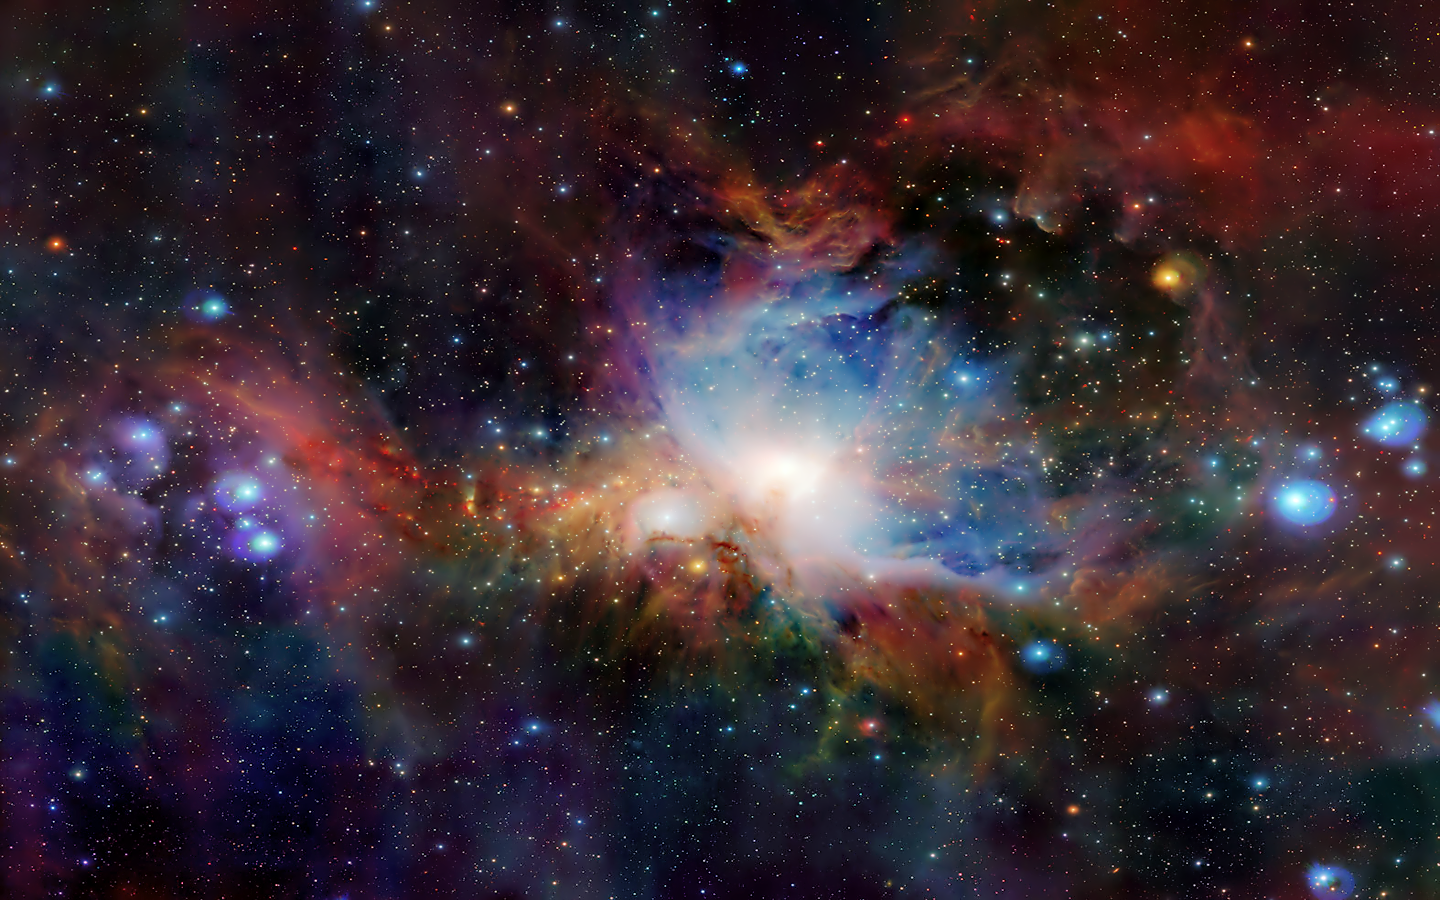 Nice Gallery of Nebula Backgrounds: 1440x900 px, Otto Heng